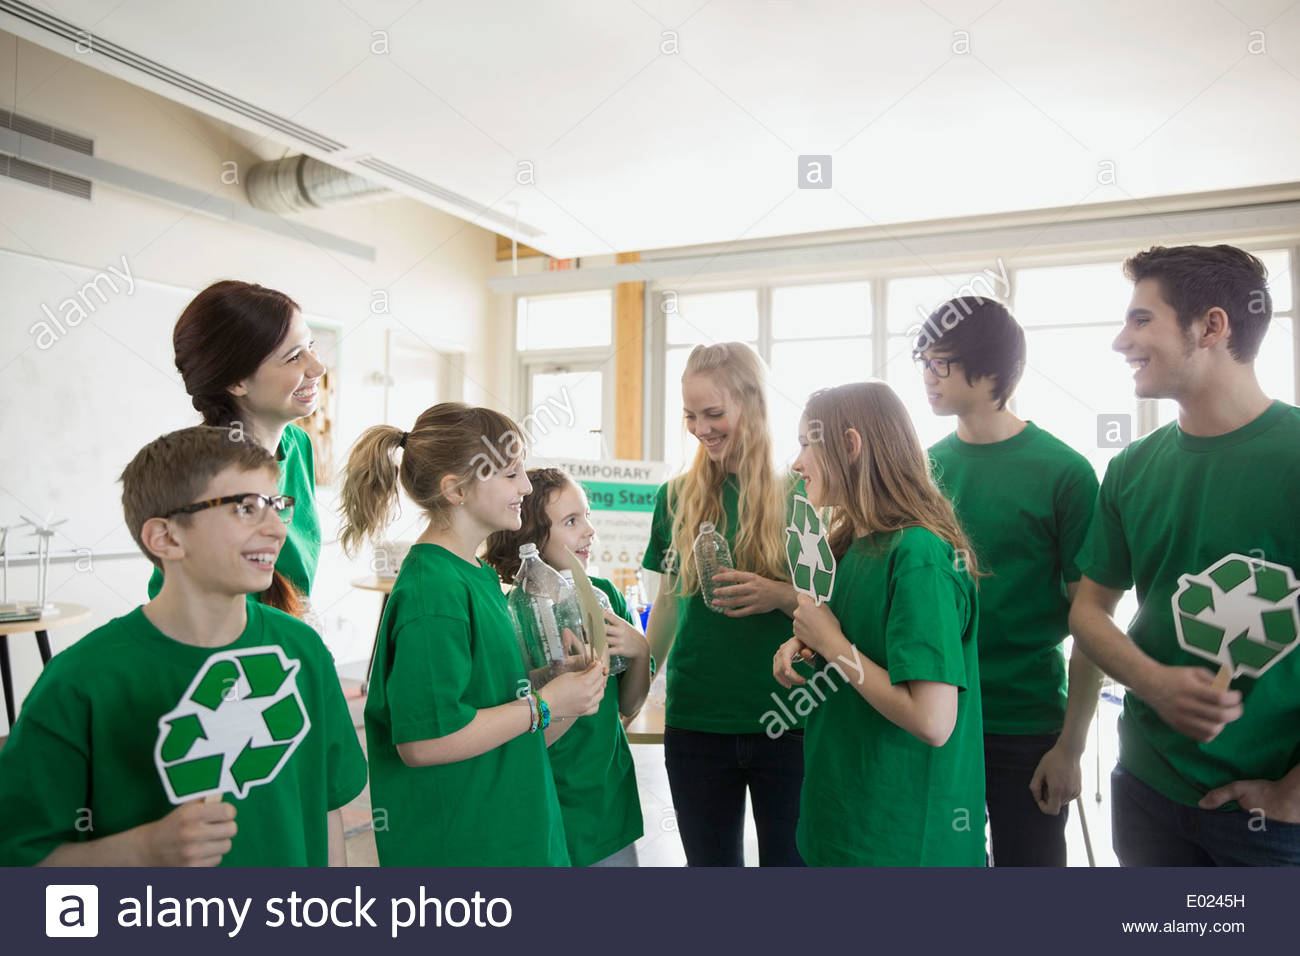 Mentors and students with recycle symbols in classroom - Stock Image